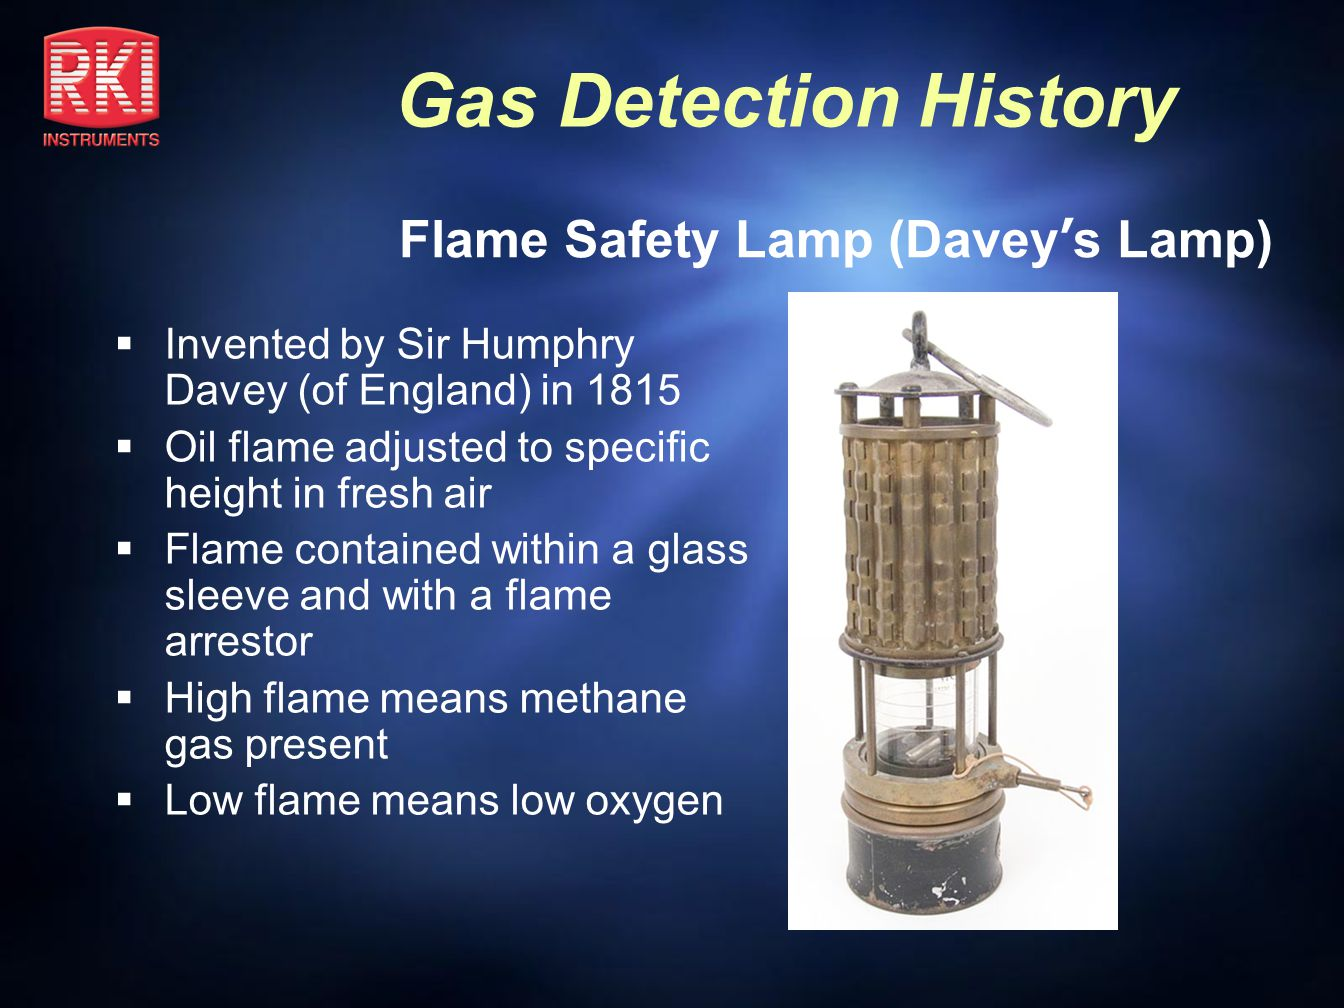 Gas Detection History Interferometer Uses principle of light diffraction in air to indicate presence of methane or gasoline vapors Light diffraction creates visible fringe lines that shift to indicate gas concentration